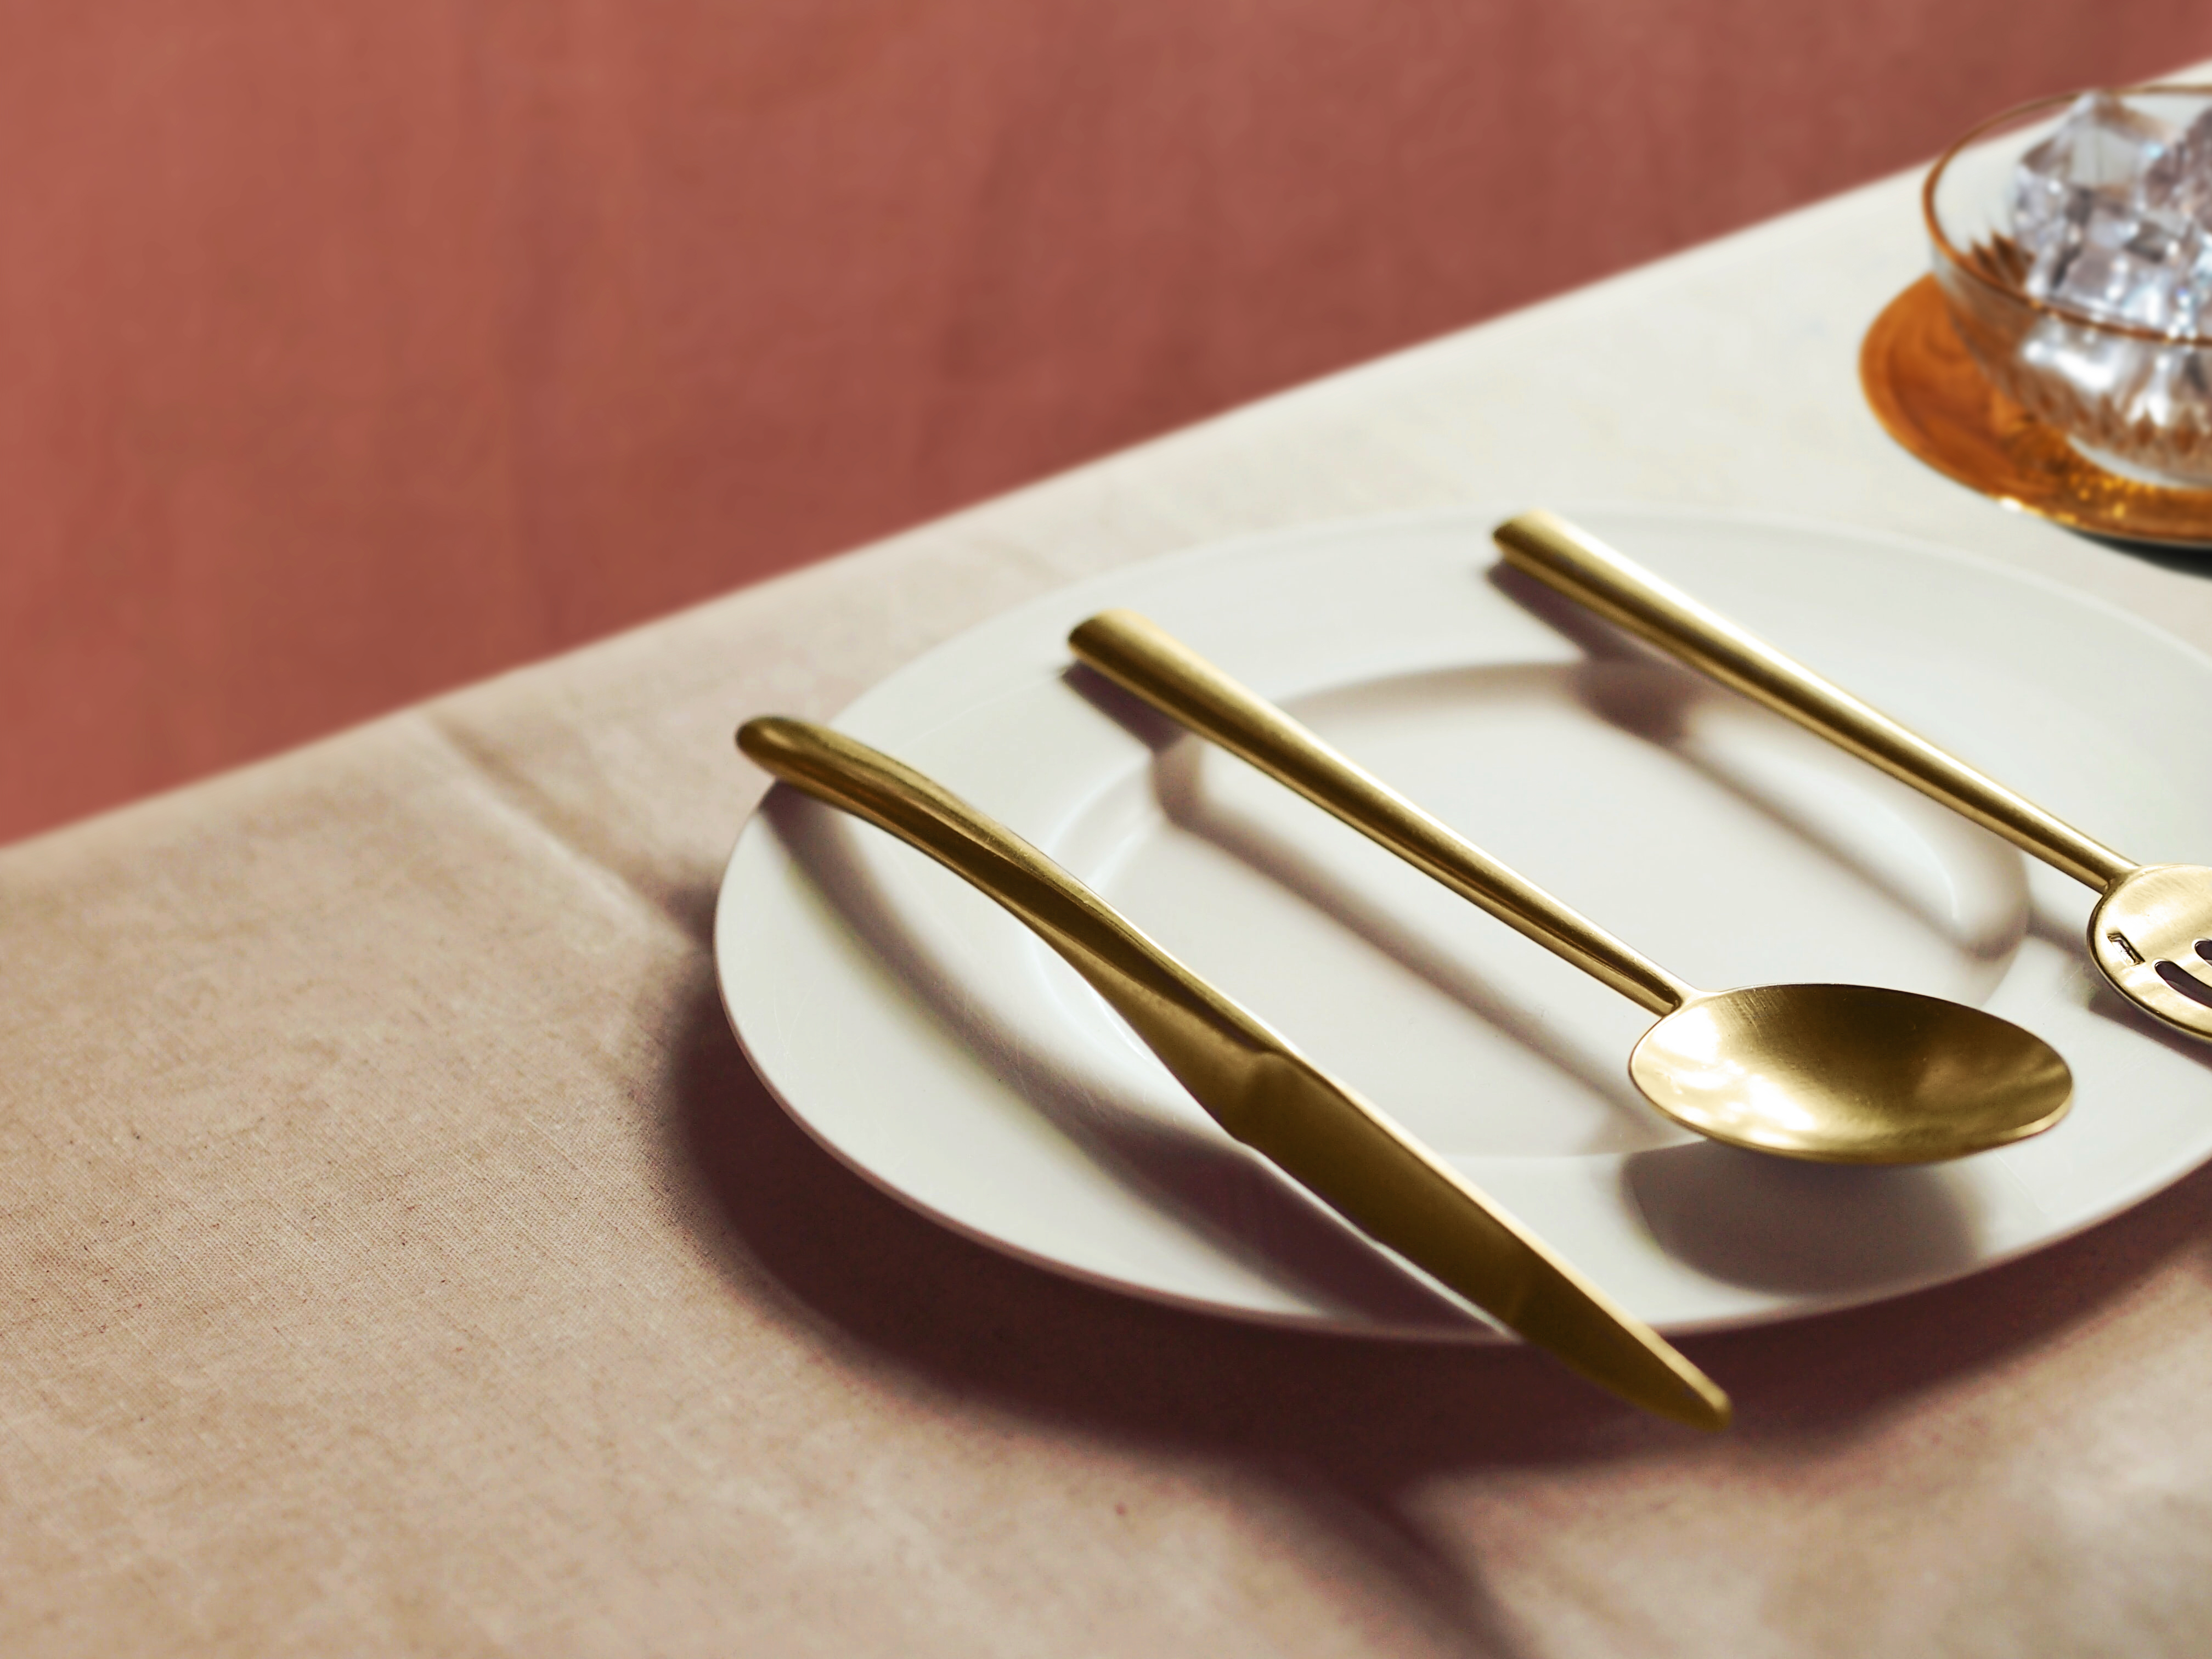 Care for your Flatware